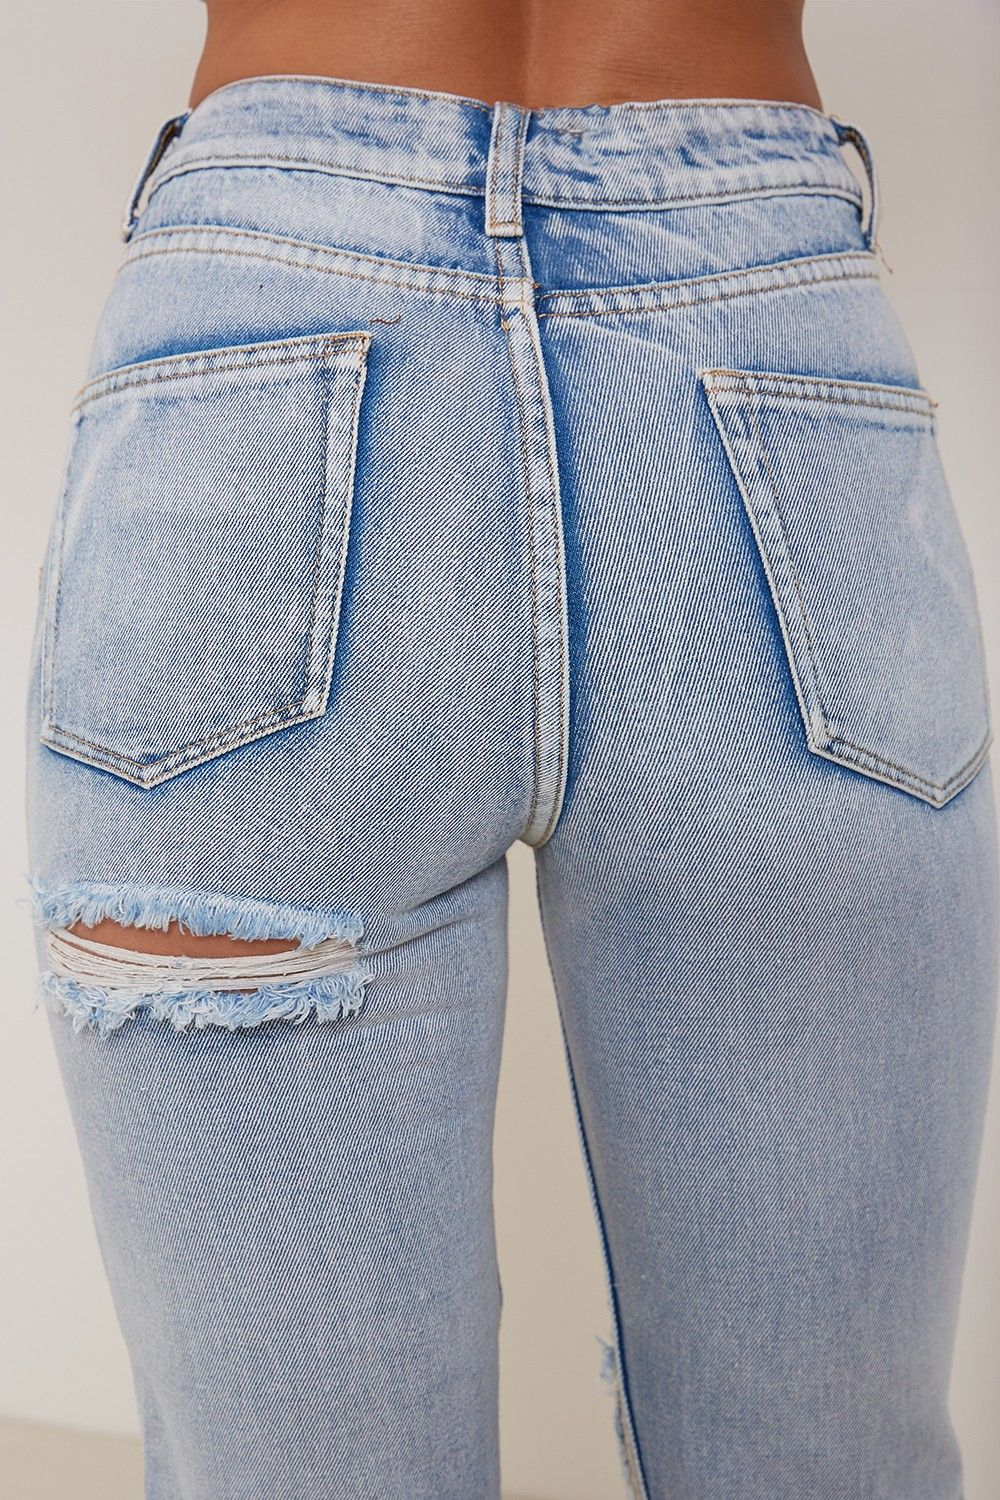 7bdd2e78ae Best Jeans for Women of All Sizes and Styles 2018 200+ Cute Ripped Jeans  Outfits For Winter 2018  femalefashion  winteroutfits  sweaters  jeans   rippedjeans ...